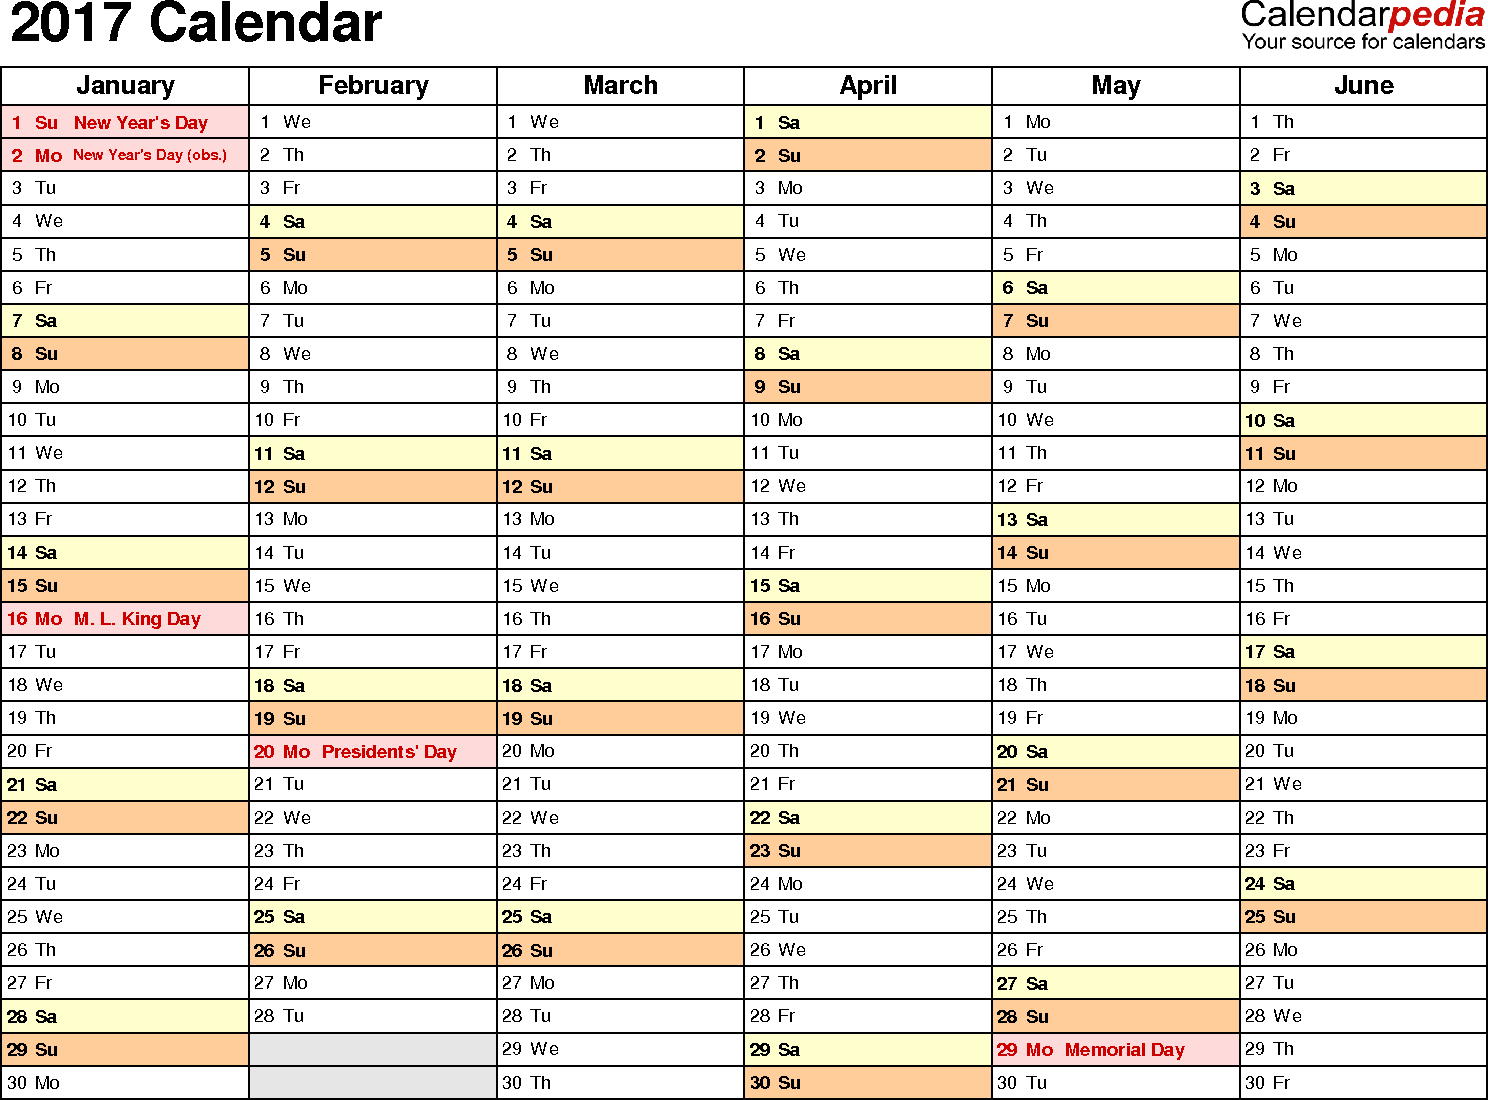 Ediblewildsus  Surprising  Calendar  Download  Free Printable Excel Templates Xls With Great Template   Calendar For Excel Months Horizontally  Pages Landscape Orientation With Charming How To Make A Table In Excel Also Microsoft Excel  In Addition Excel Array And E In Excel As Well As Gantt Chart In Excel Additionally Xml To Excel From Calendarpediacom With Ediblewildsus  Great  Calendar  Download  Free Printable Excel Templates Xls With Charming Template   Calendar For Excel Months Horizontally  Pages Landscape Orientation And Surprising How To Make A Table In Excel Also Microsoft Excel  In Addition Excel Array From Calendarpediacom